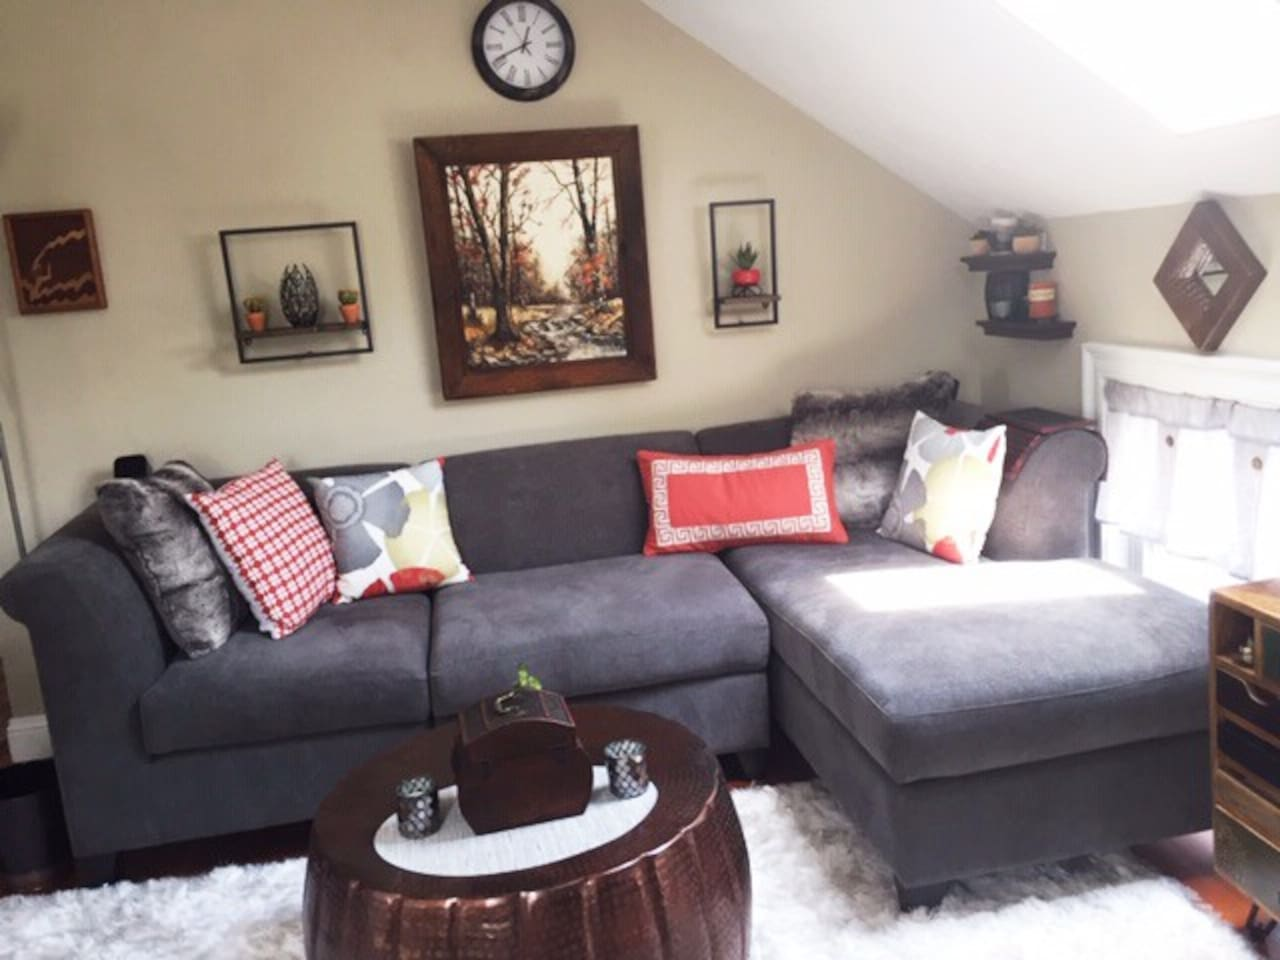 Modern, updated living room, designed by host and owner of Interior Decorating NE